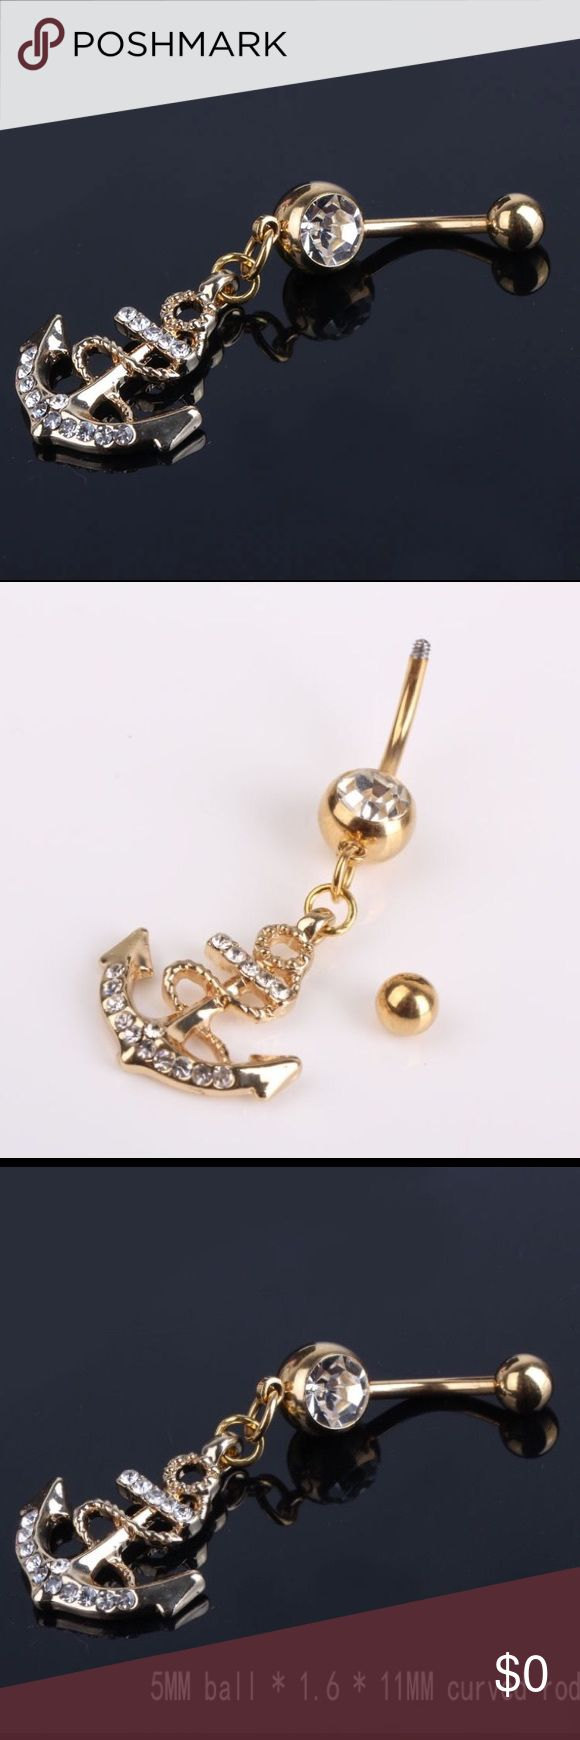 🆕COMING SOON CRYSTAL ANCHOR NAVEL/BELLY RING GOLD 🆕📦COMING SOON. BRAND NEW IN CLEAR PACKAGING SILVER ANCHOR NAVEL/ BELLY RING      MATERIAL: GOLD PLATED. BALL. 5mm*1.6. 11mm CURVED ROD Jewelry